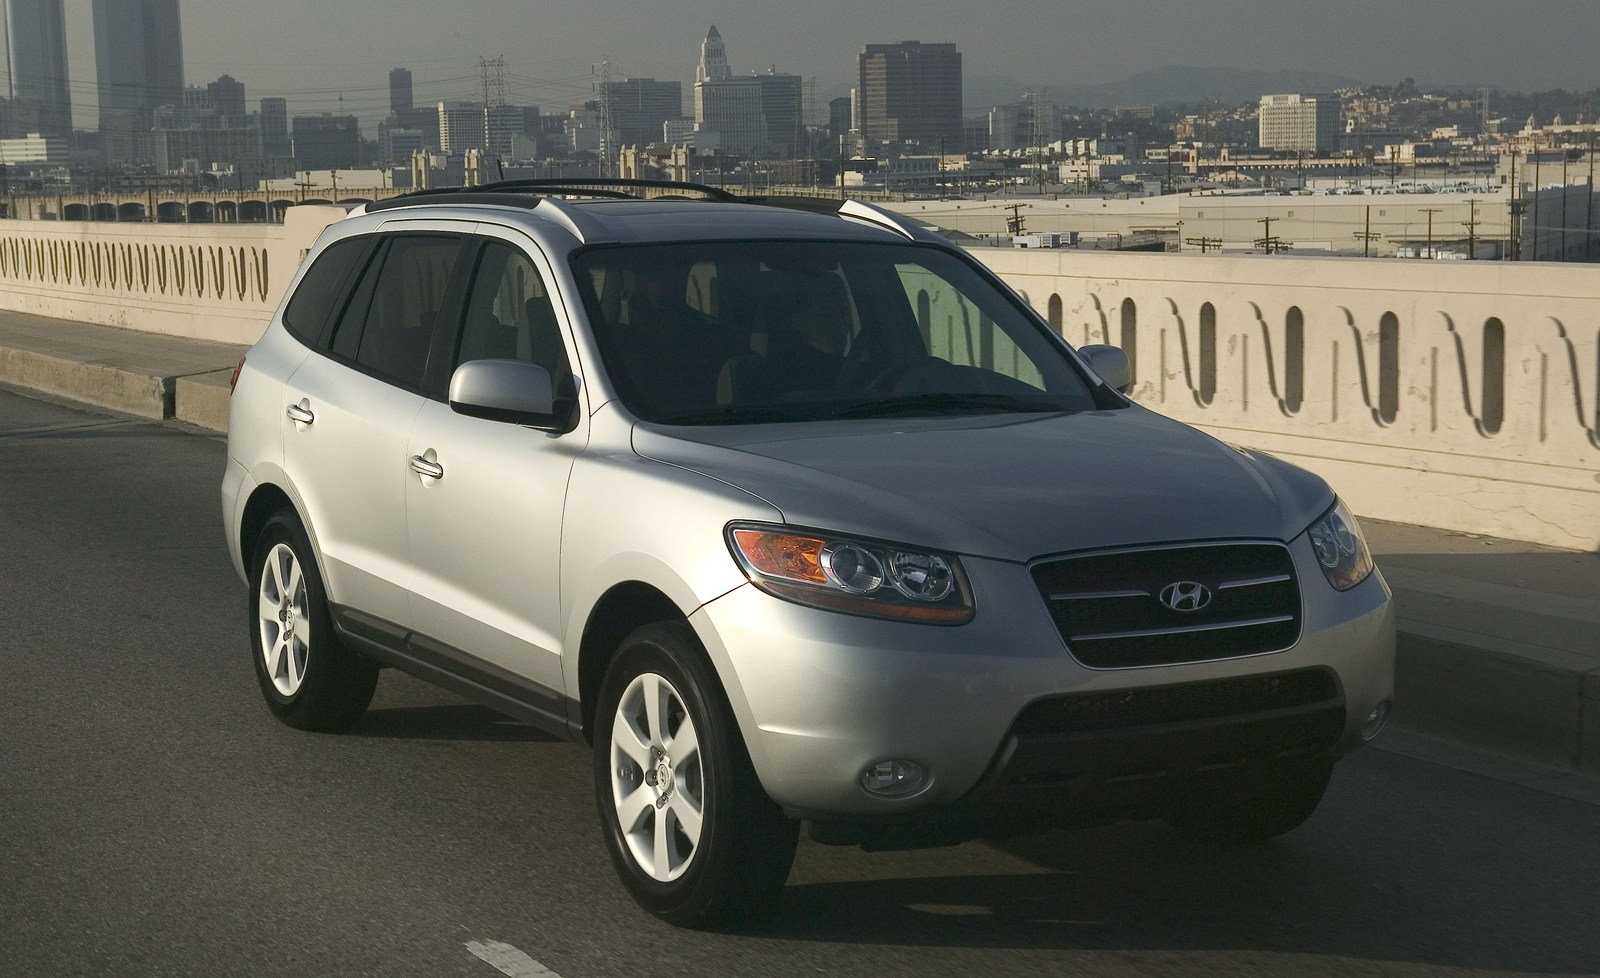 2007 hyundai santa fe review top speed. Black Bedroom Furniture Sets. Home Design Ideas